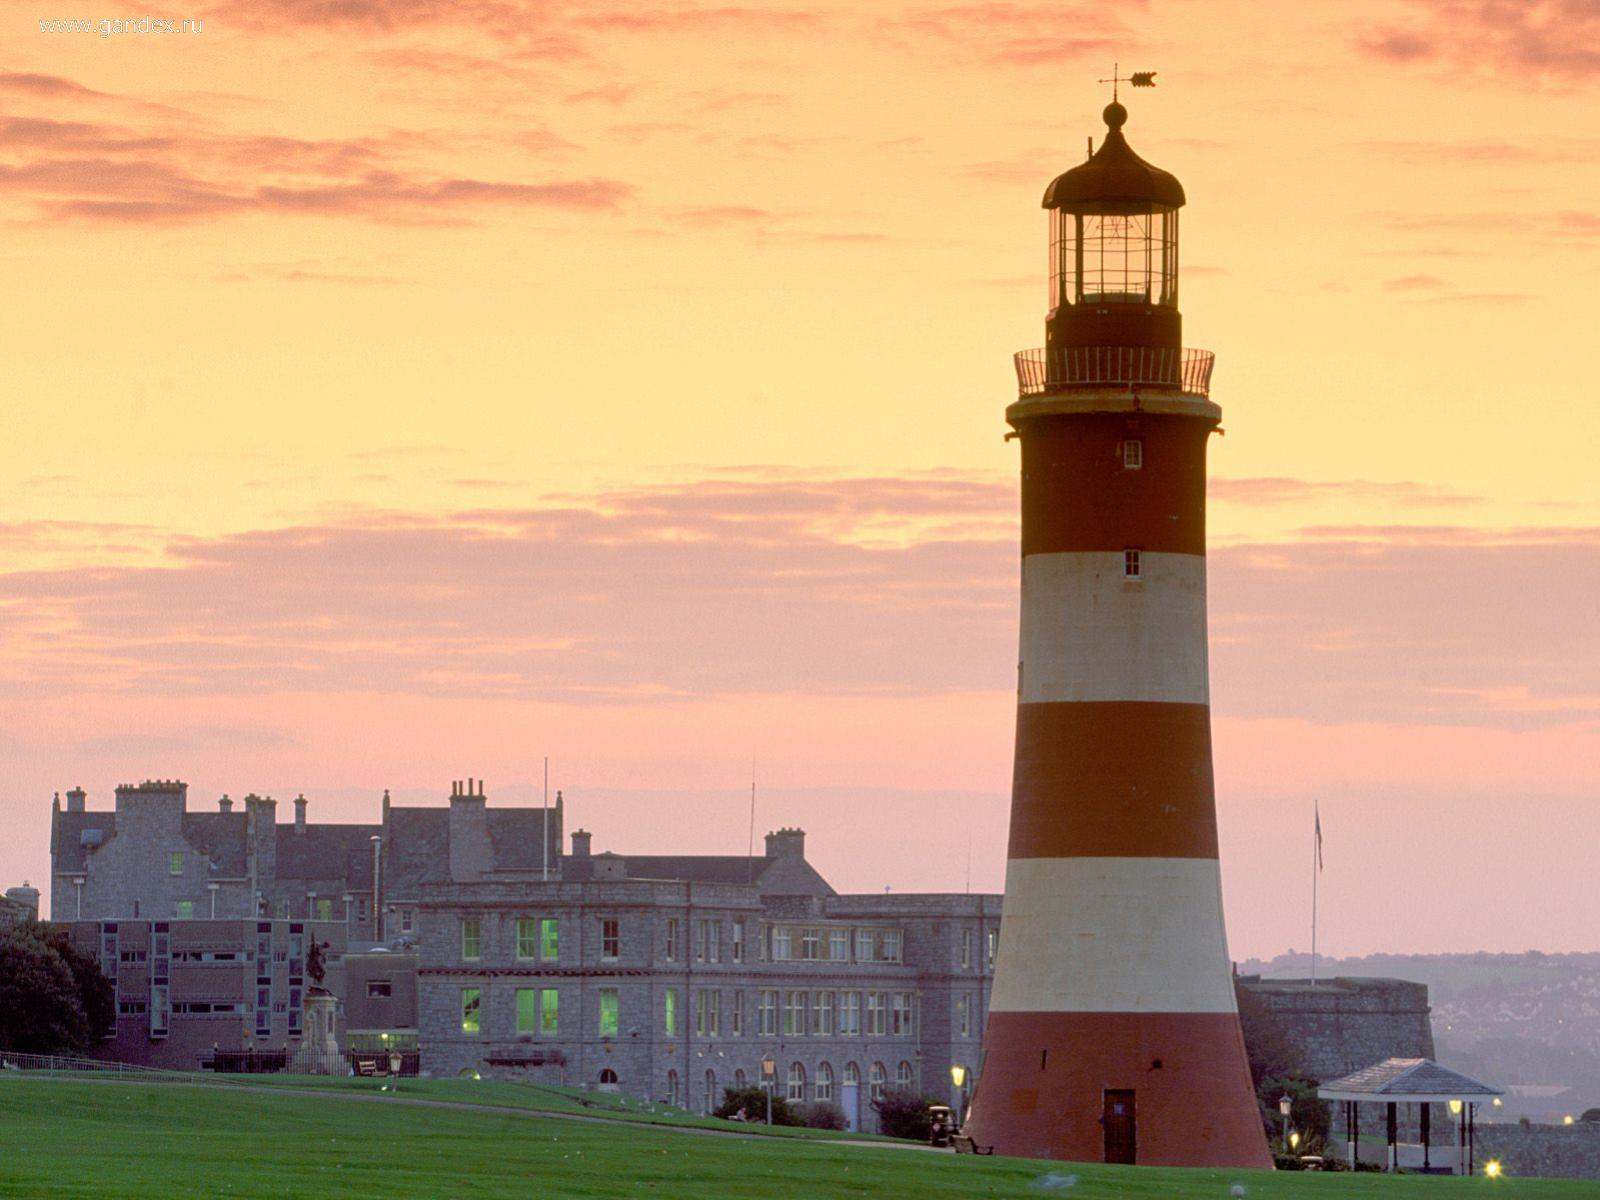 Lighthouse in a small English town, wallpaper.